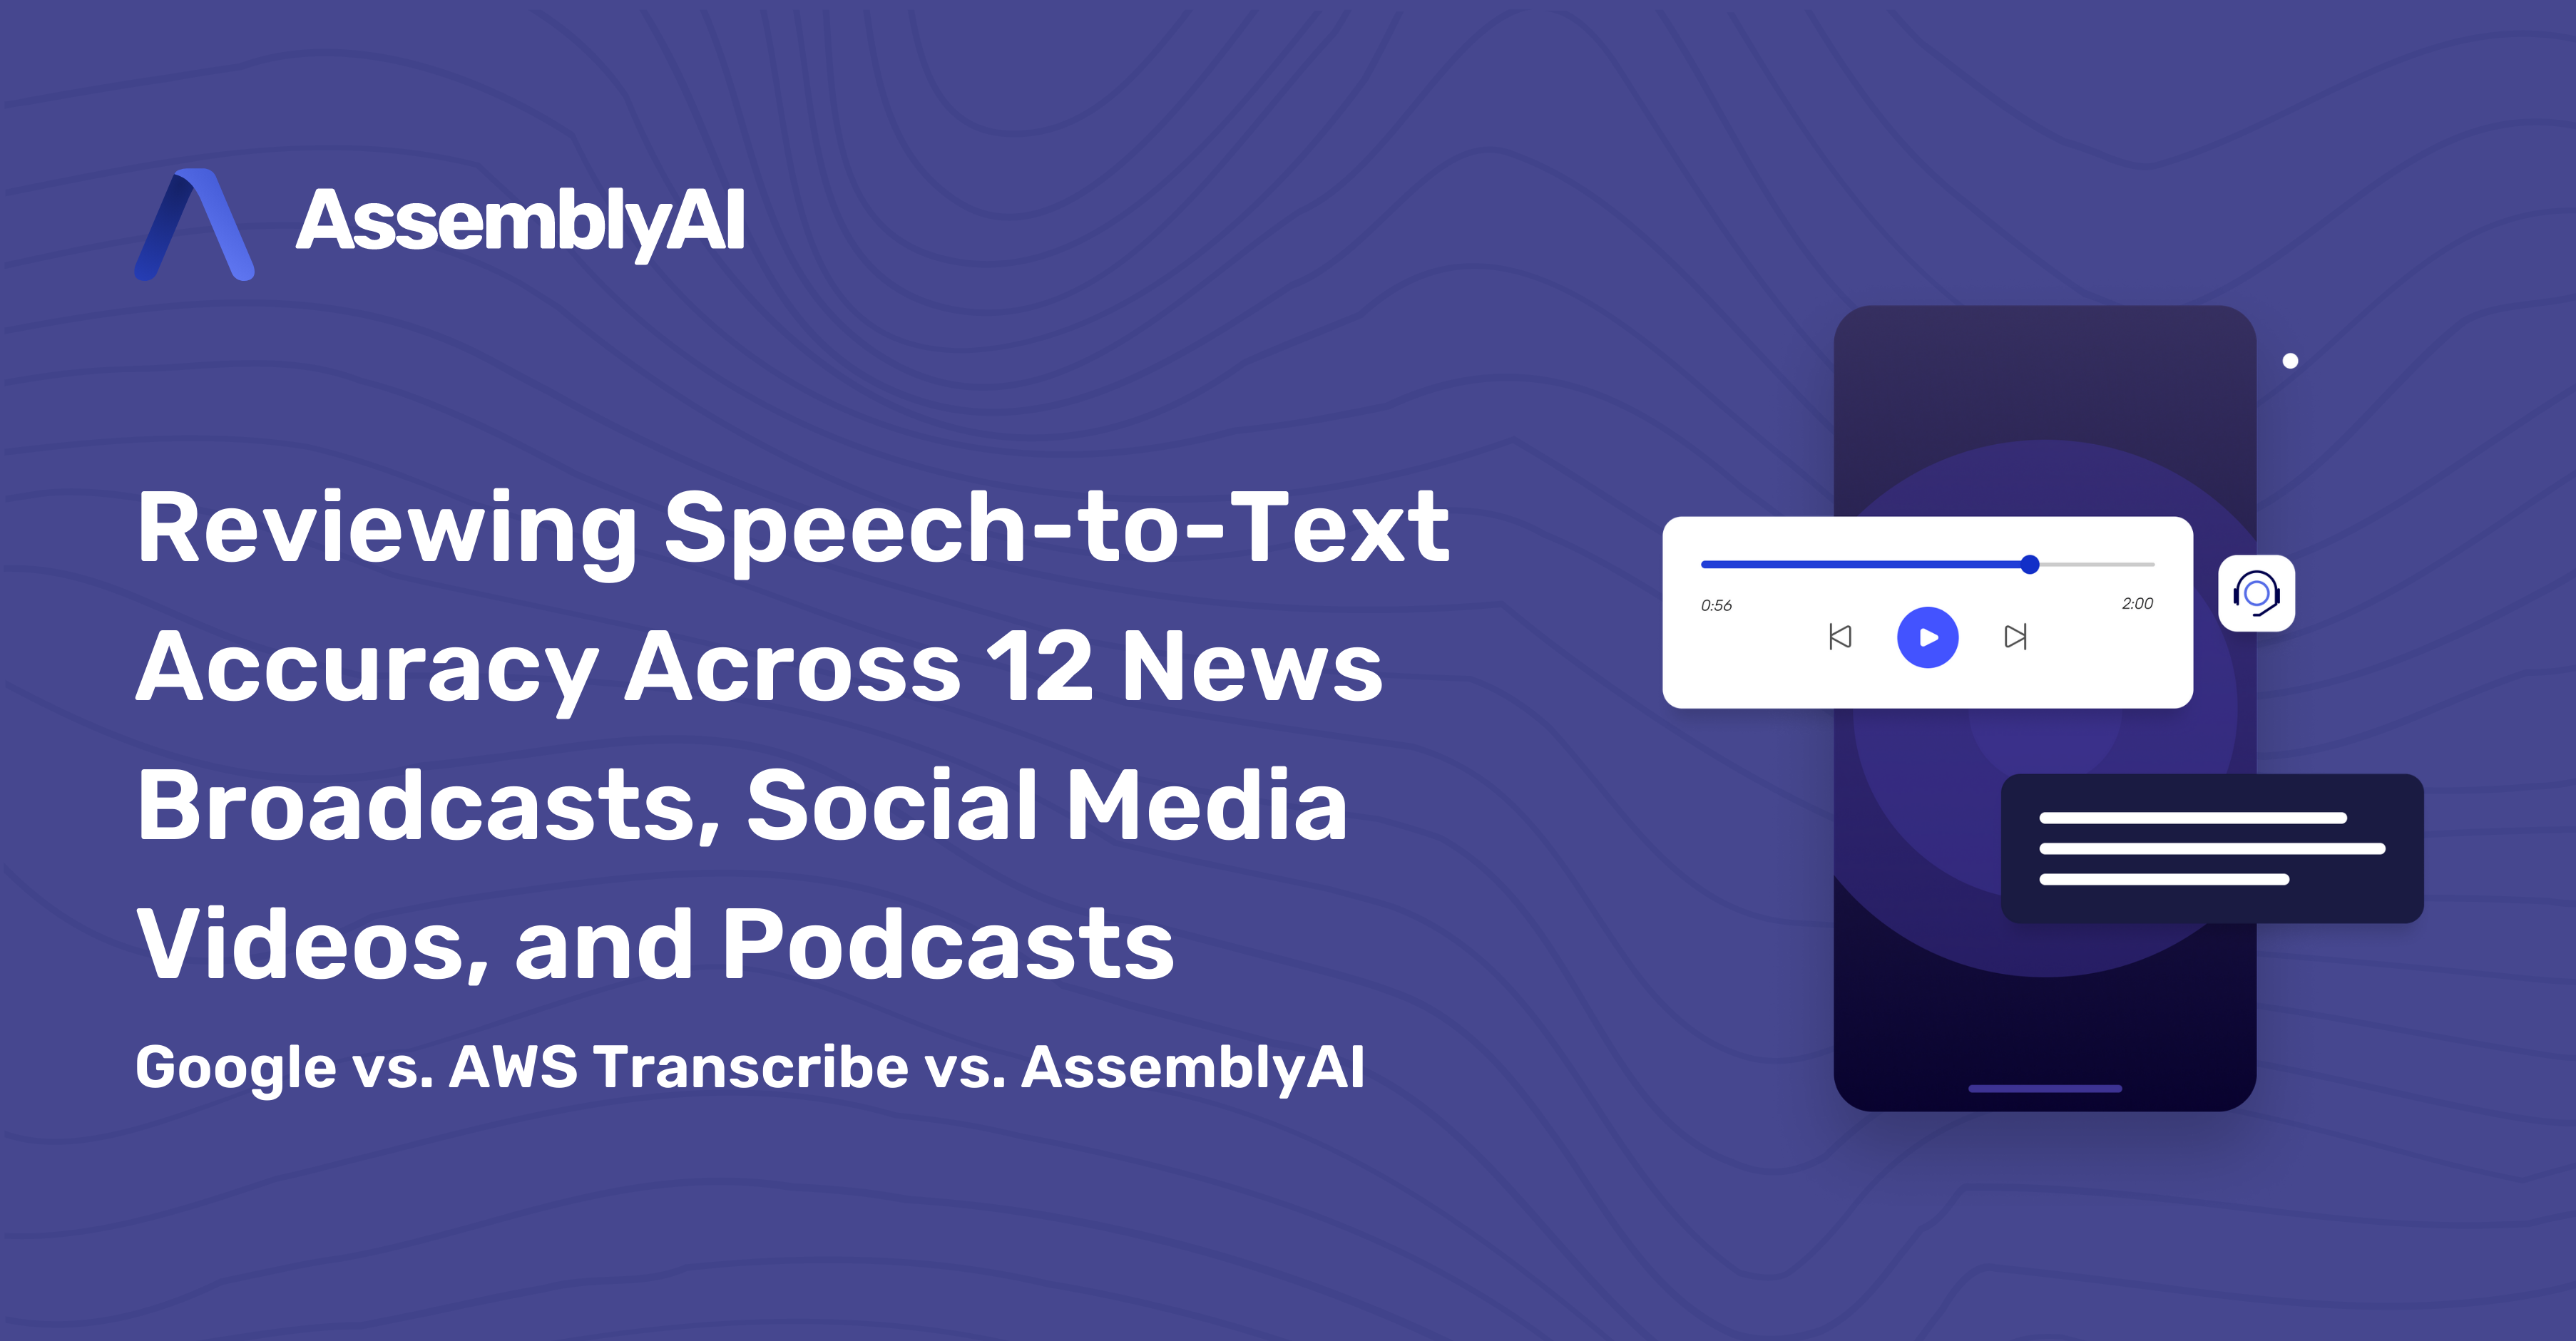 Reviewing Speech-to-Text Accuracy Across 12 News Broadcasts, Social Media Videos, and Podcasts